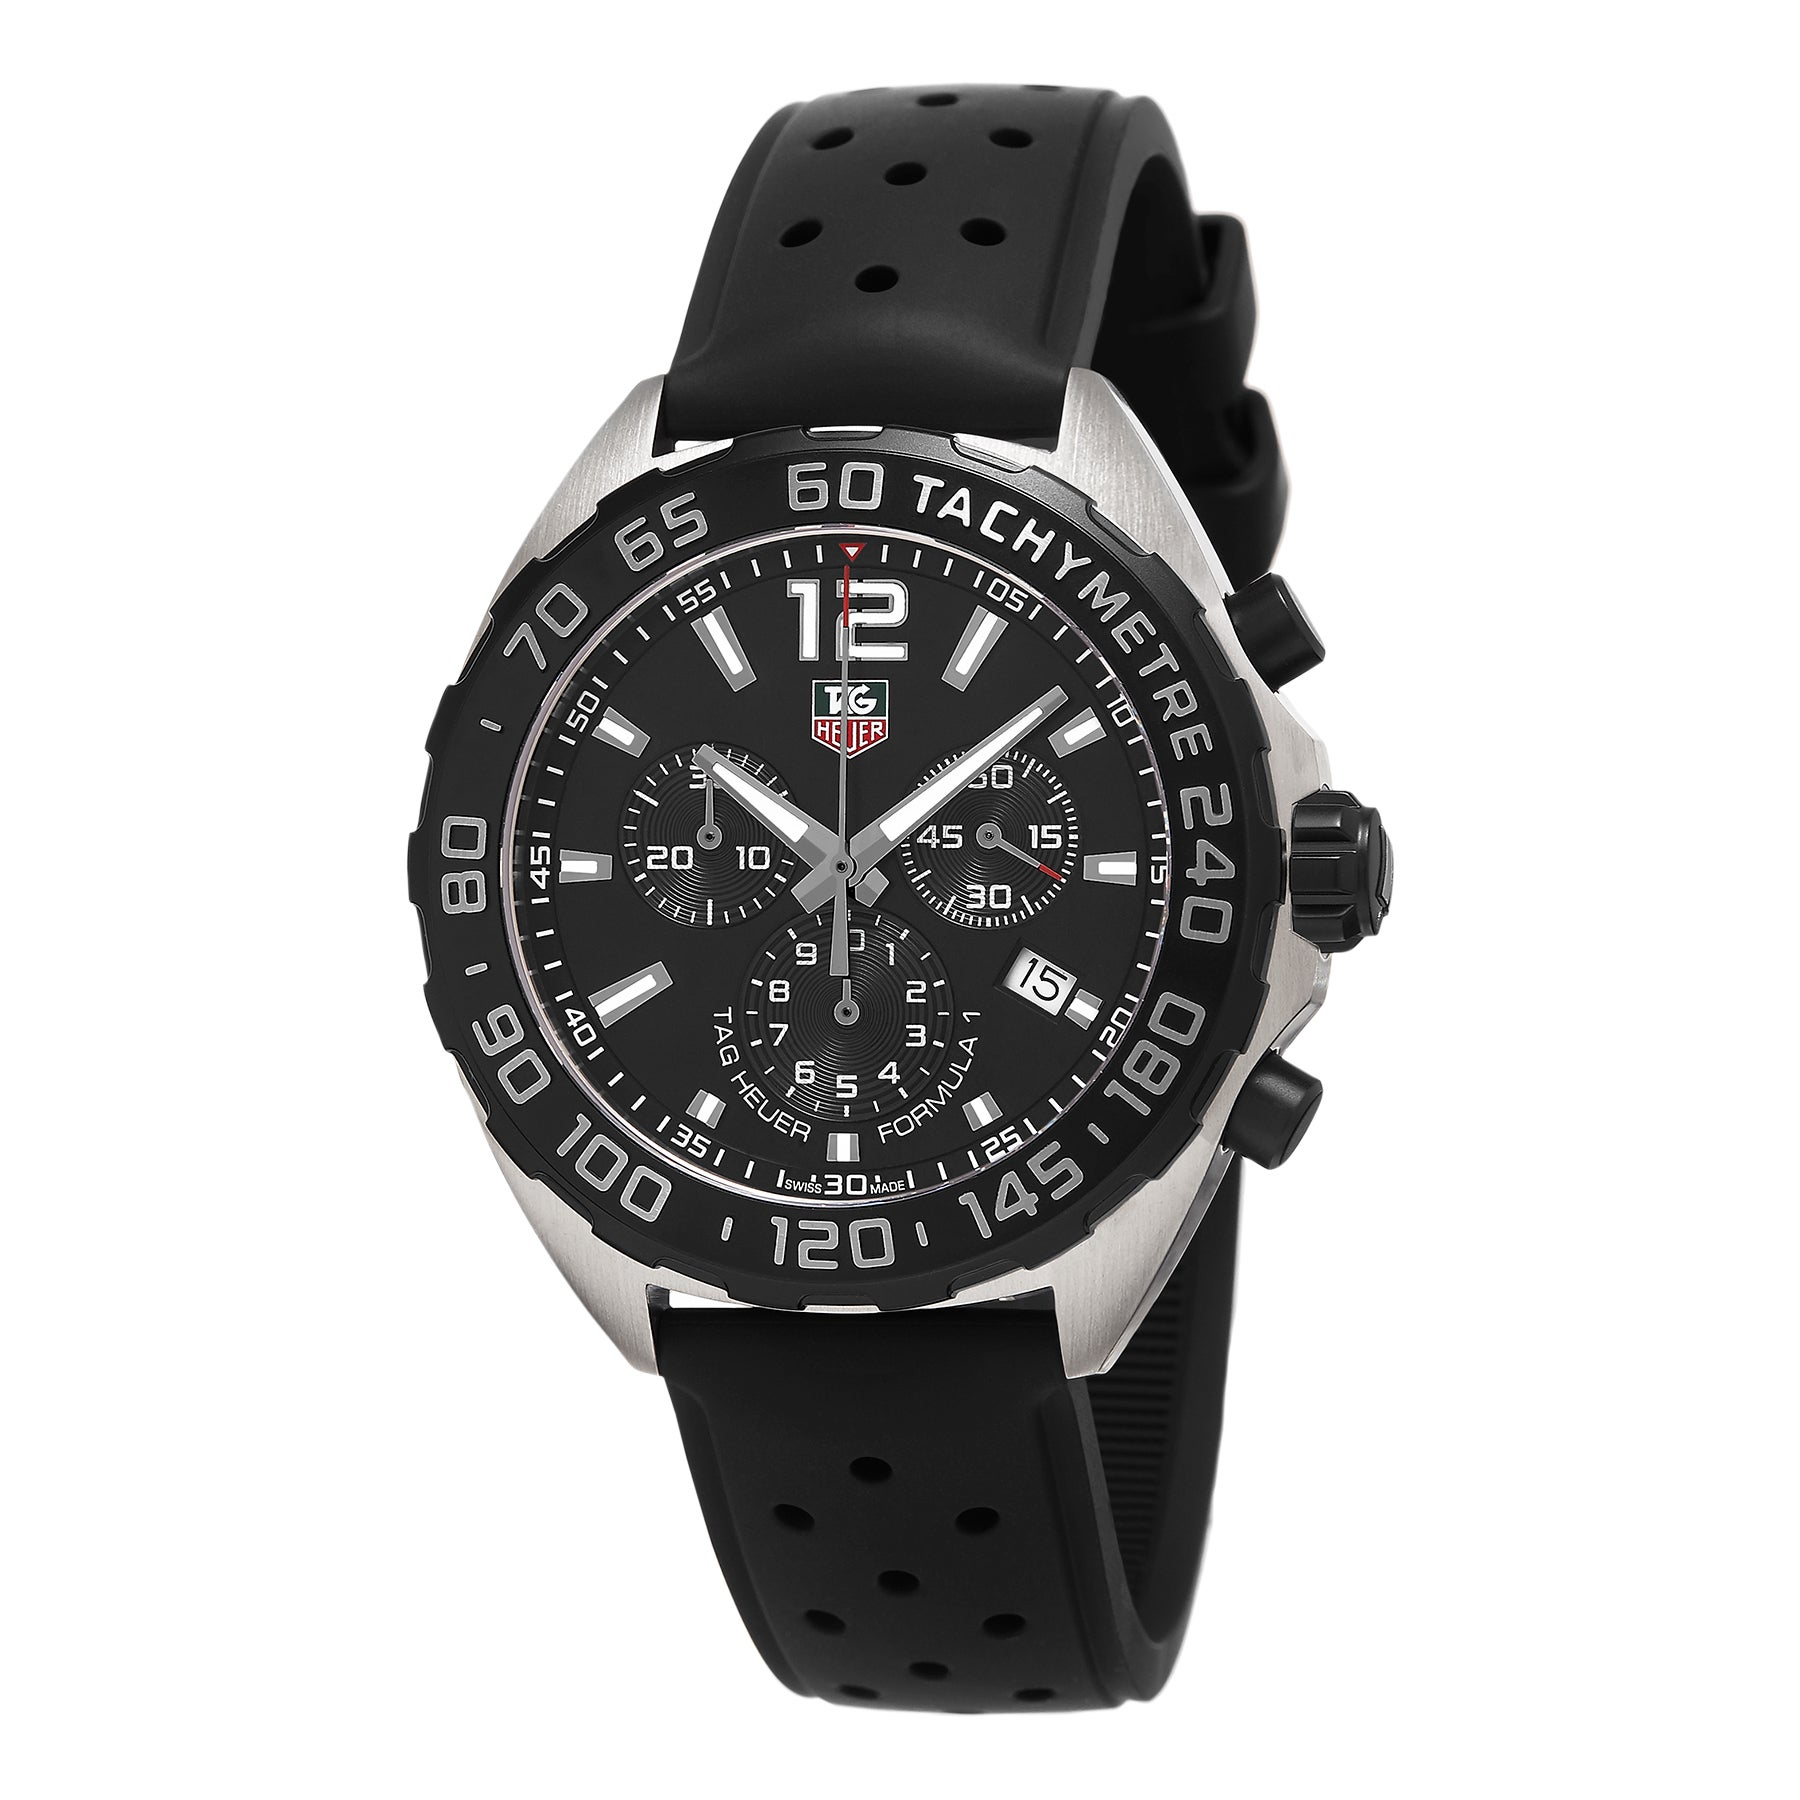 07bbd0f6dff Shop Tag Heuer Men s CAZ1110.FT8023  Formula 1  Chronograph Black Rubber  Watch - Free Shipping Today - Overstock - 11065836